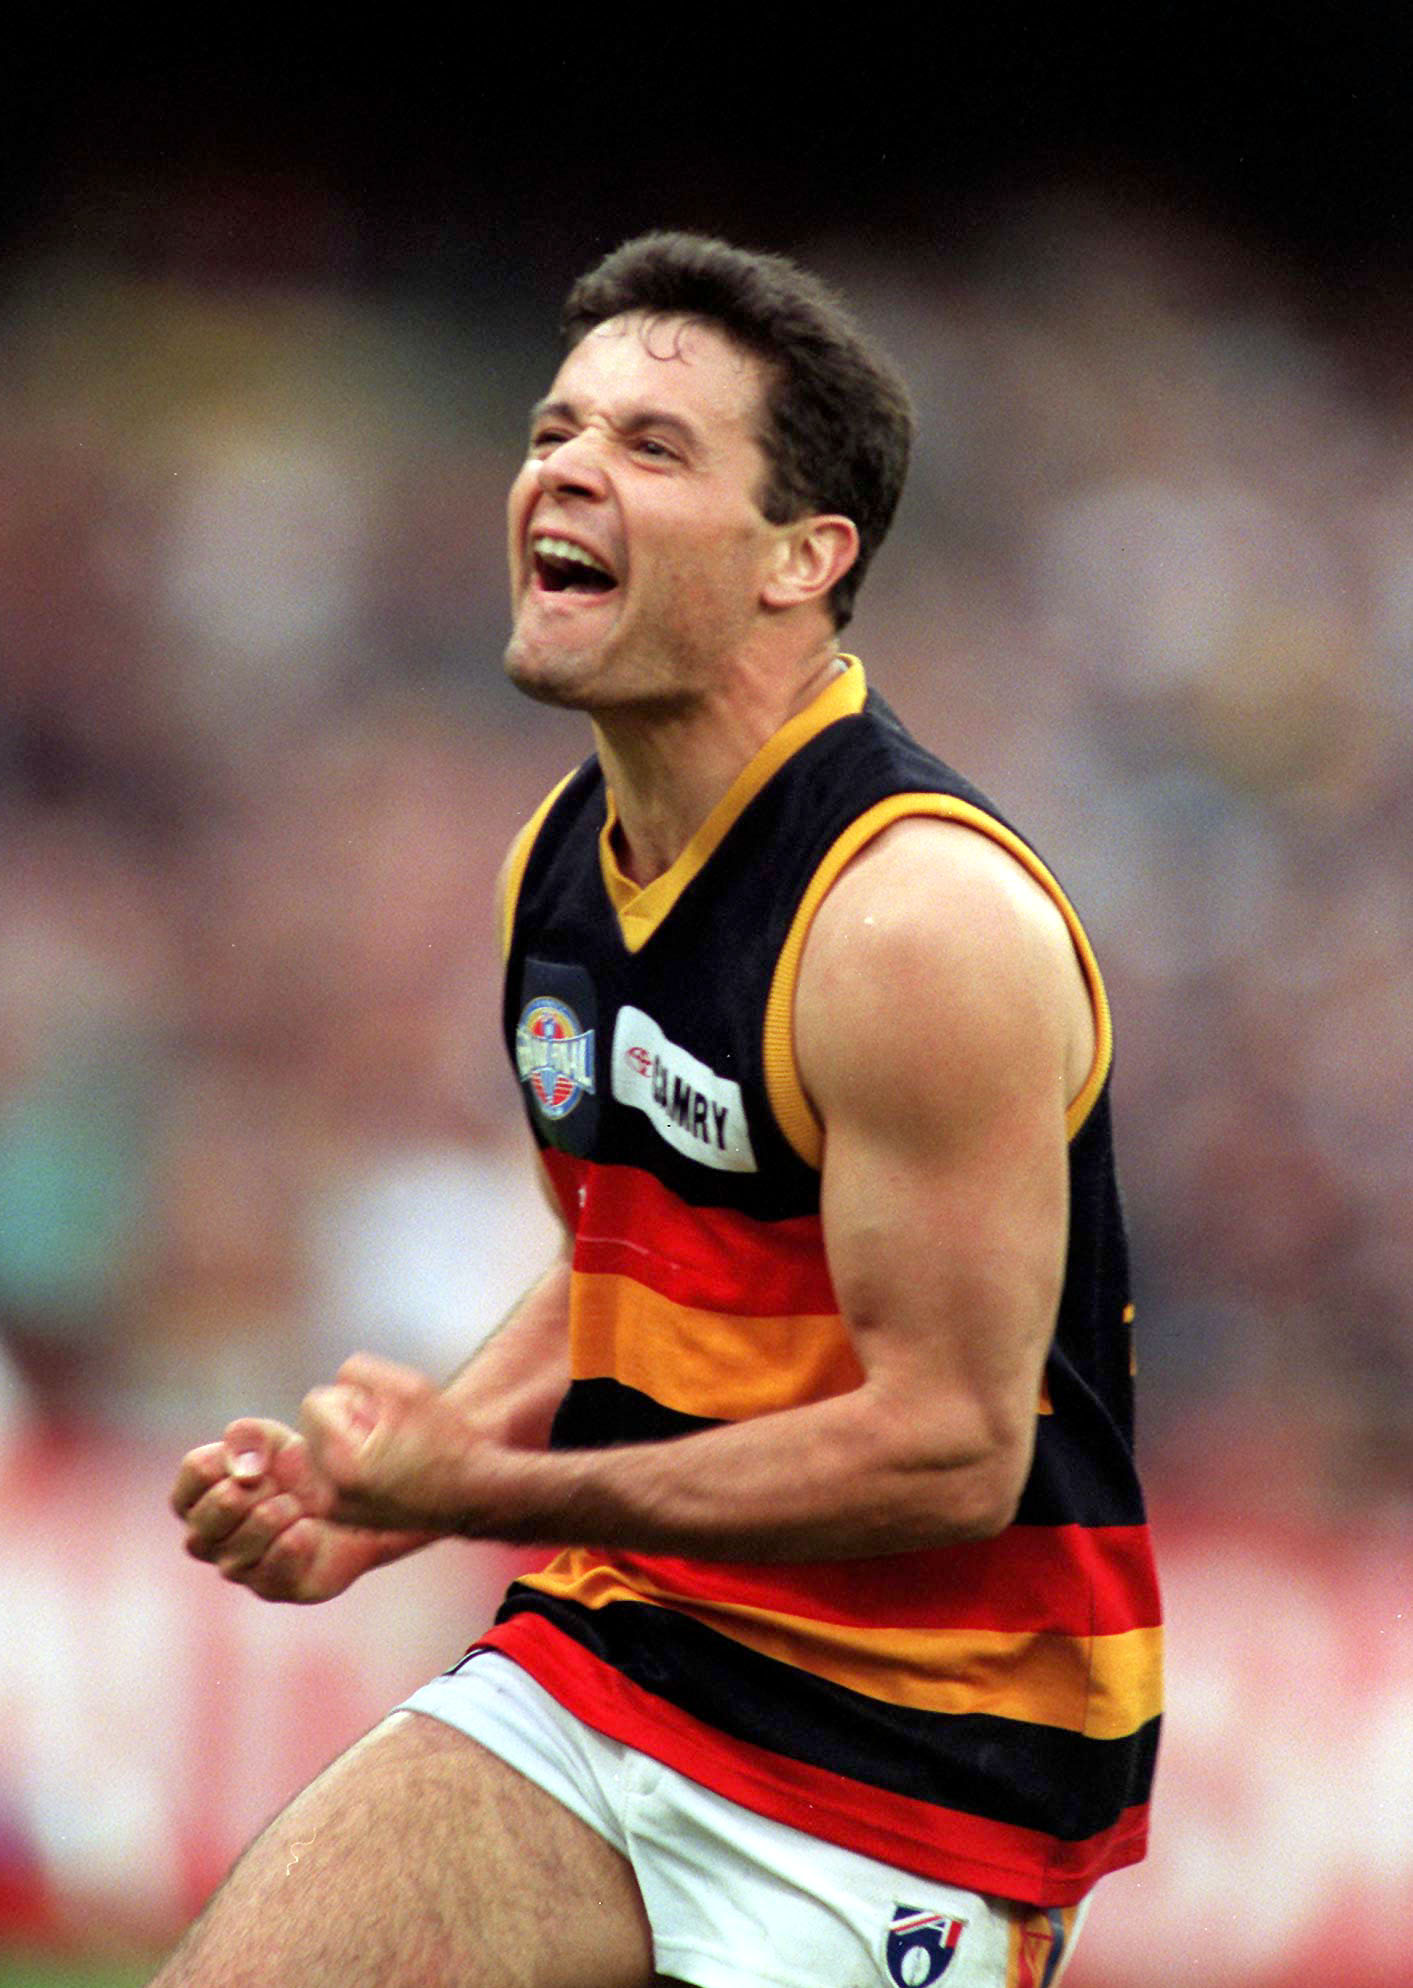 A footballer screams in a joy while wearing a yellow, red and blue jumper.